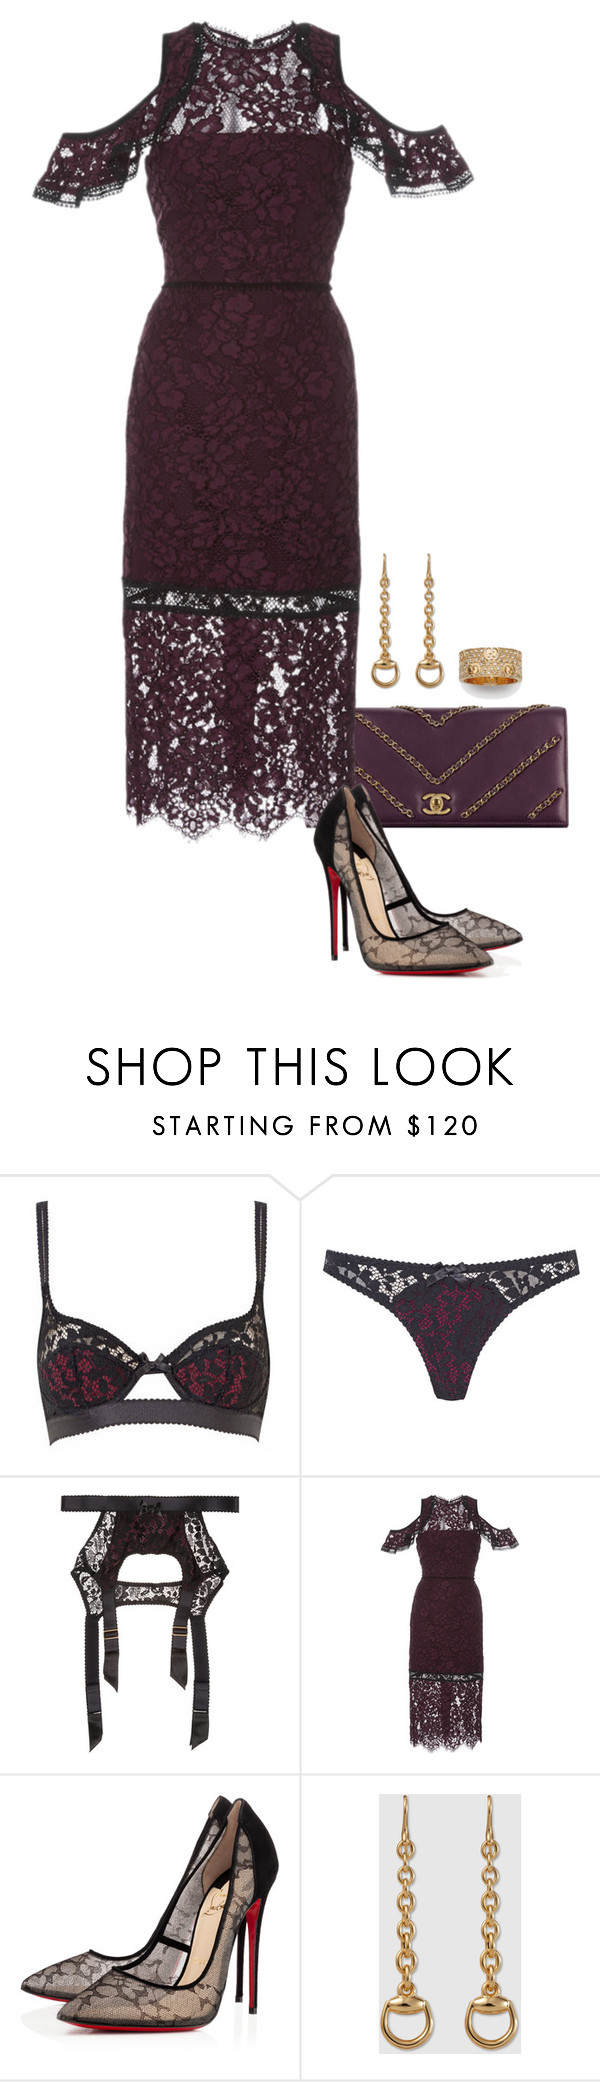 """""""Evie."""" by foreverforbiddenromancefashion ❤ liked on Polyvore featuring Agent Provocateur, Chanel, Alexis, Christian Louboutin and Gucci"""